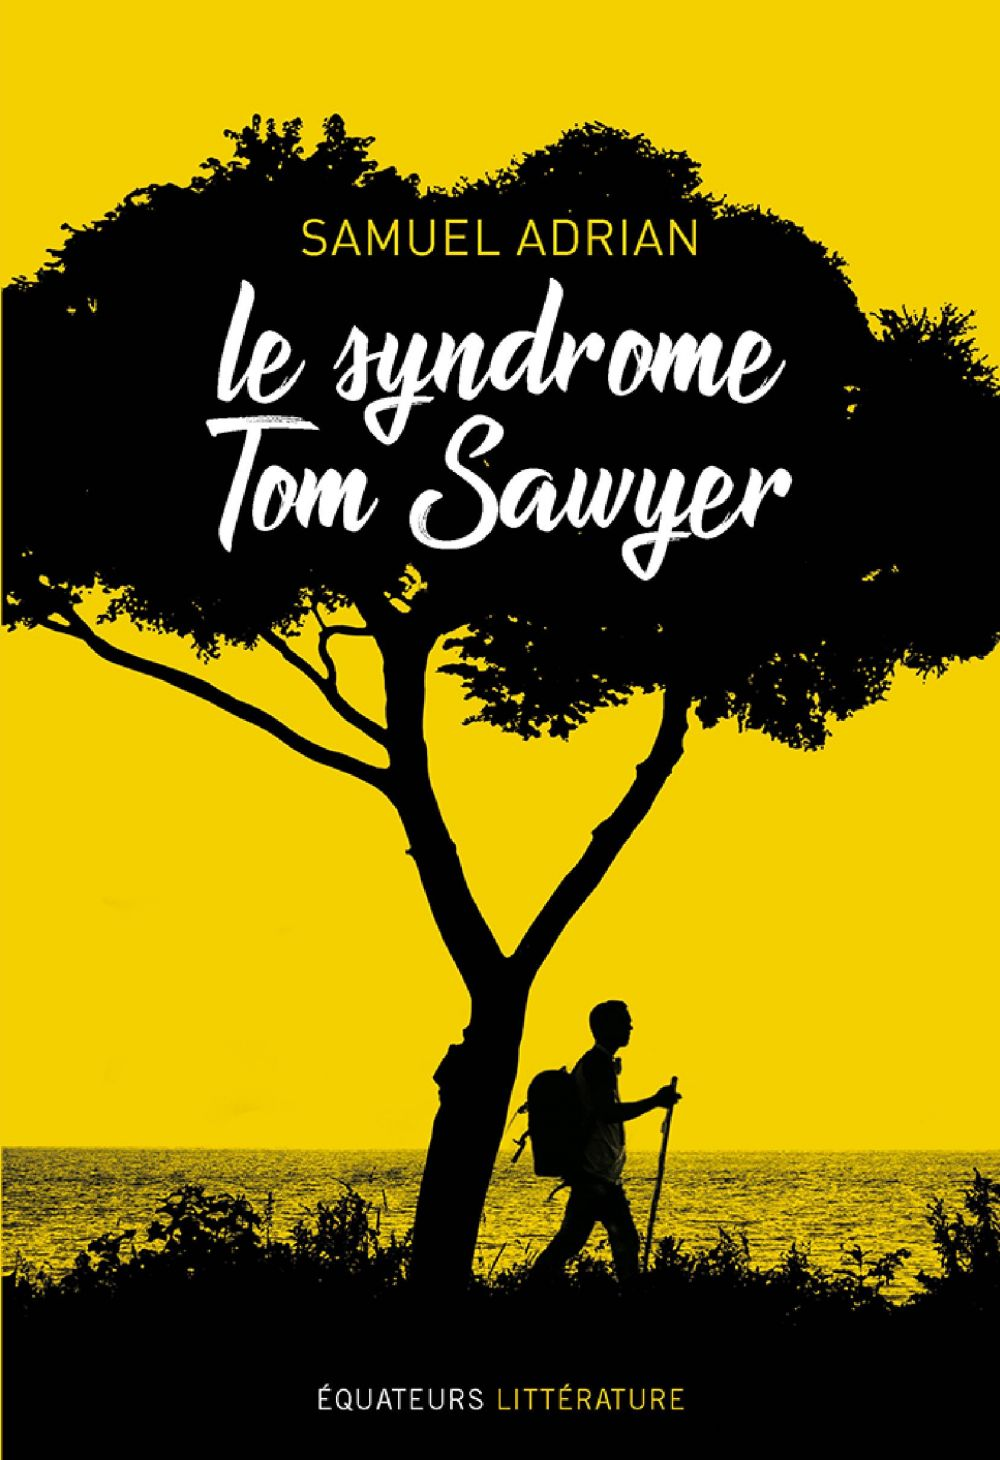 Le syndrome Tom Sawyer